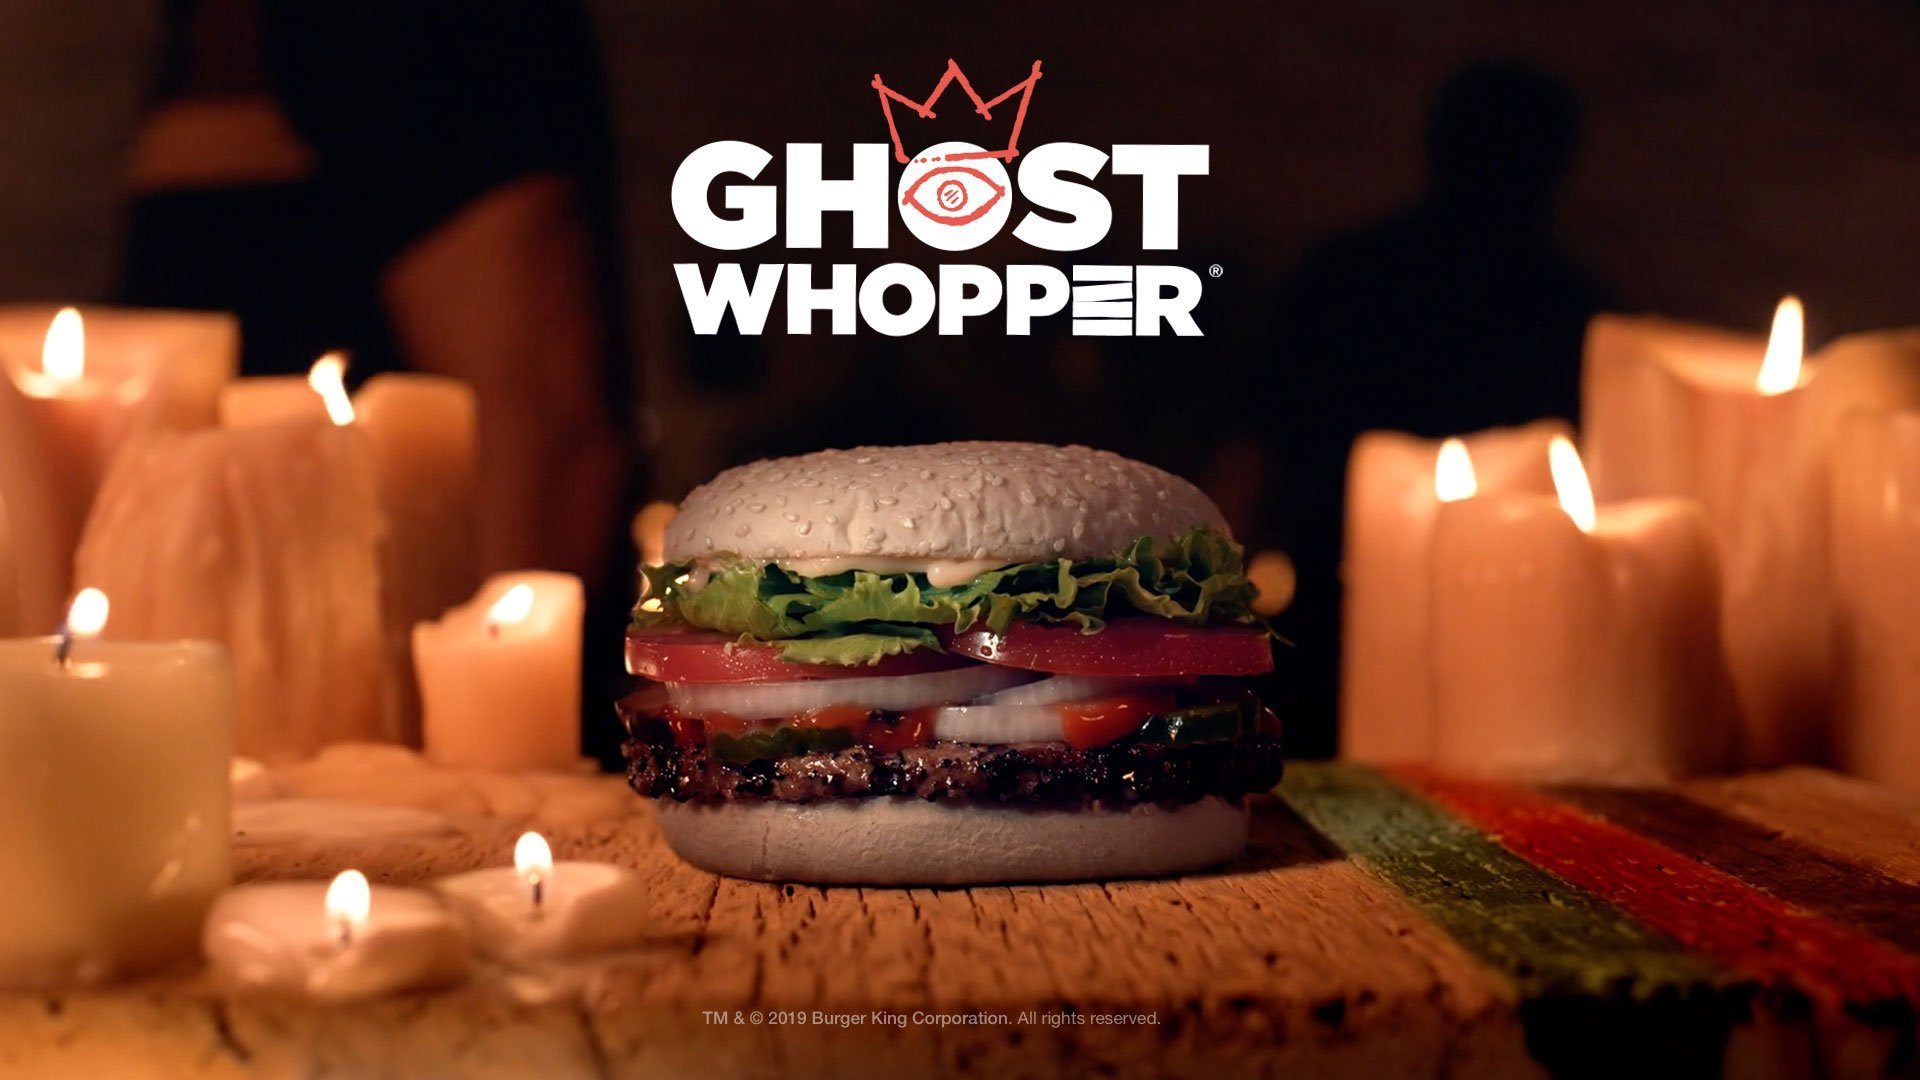 Burger King Halloween Whopper 2020 Burger King is selling a 'Ghost Whopper' for Halloween | Fox 59